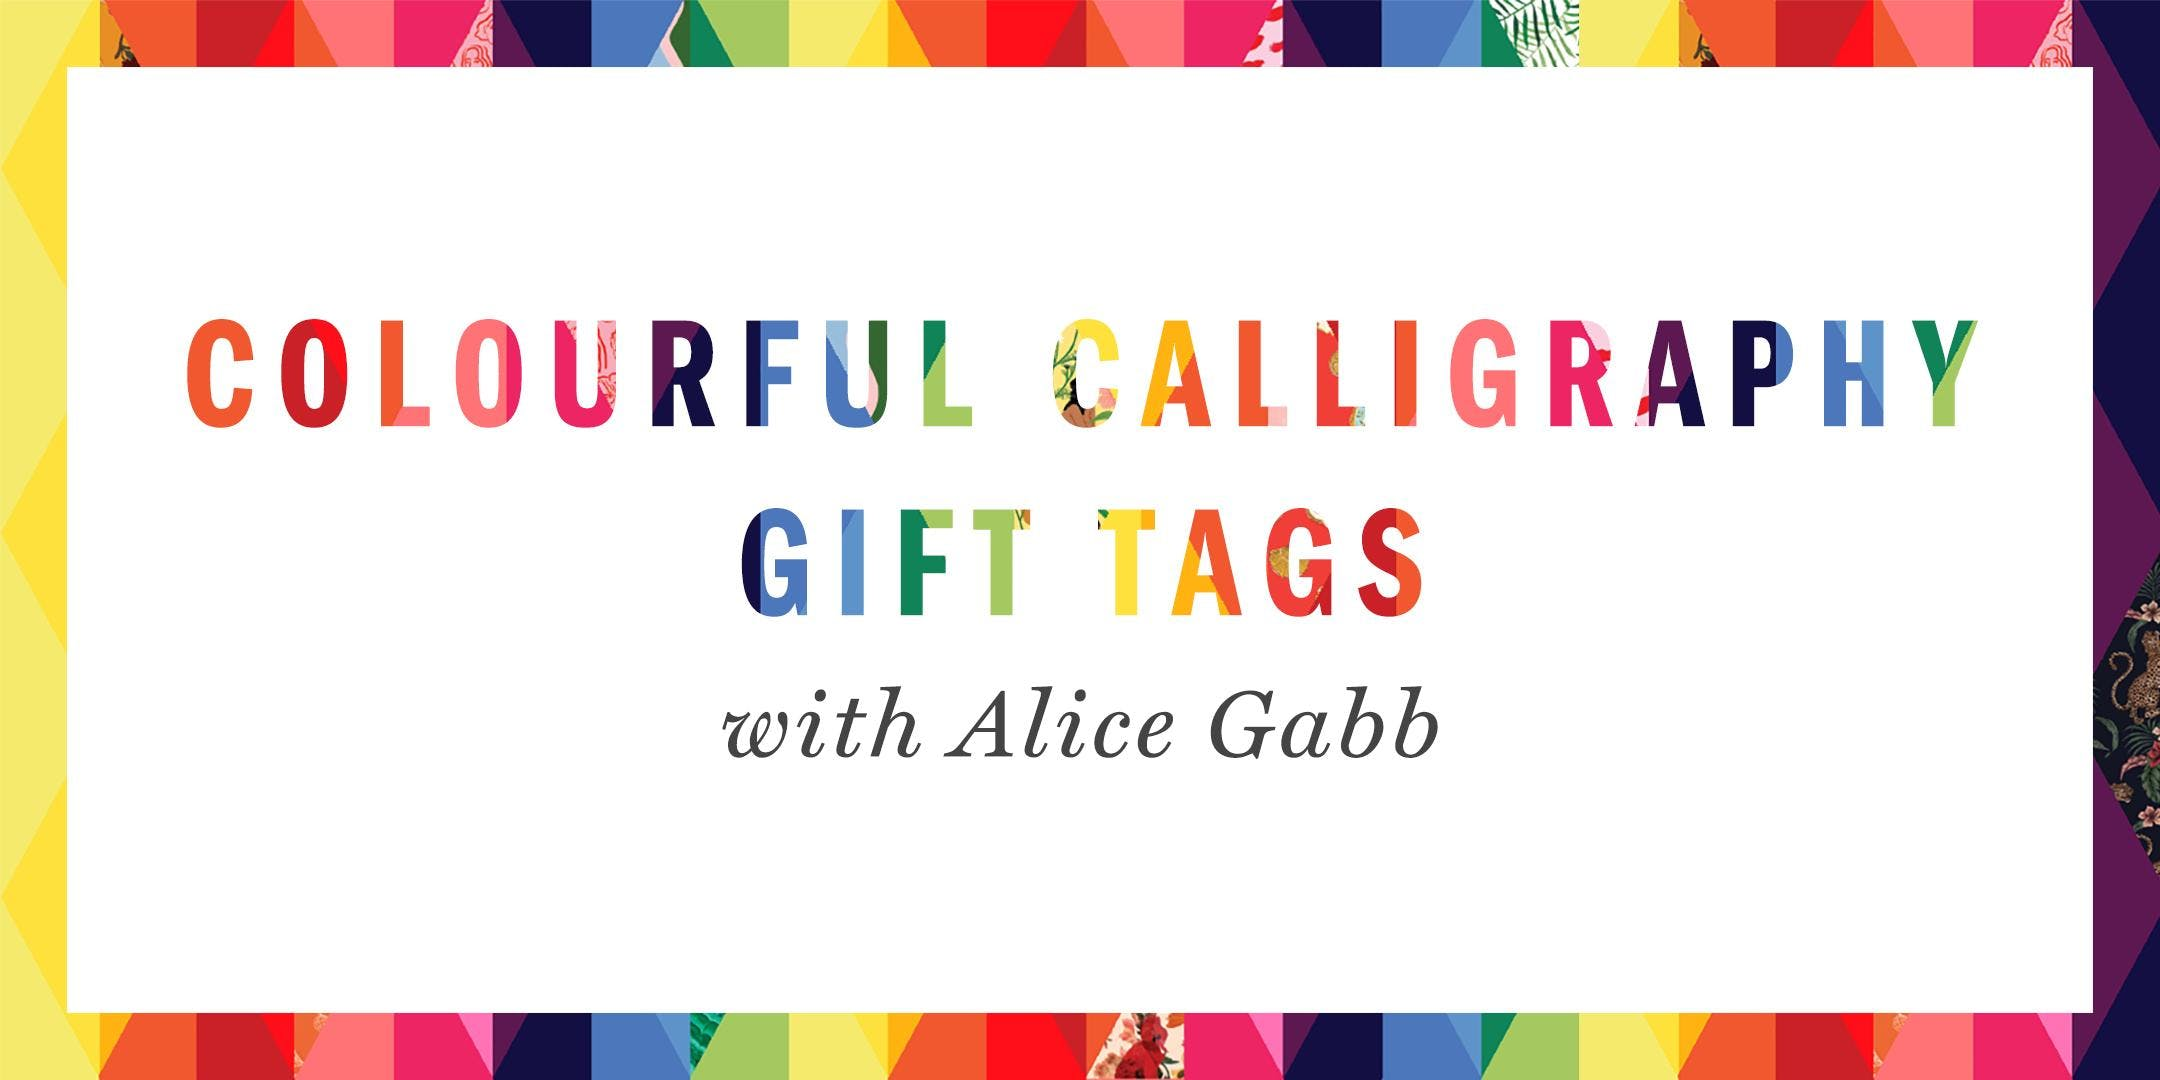 Colourful Calligraphy Gift Tag